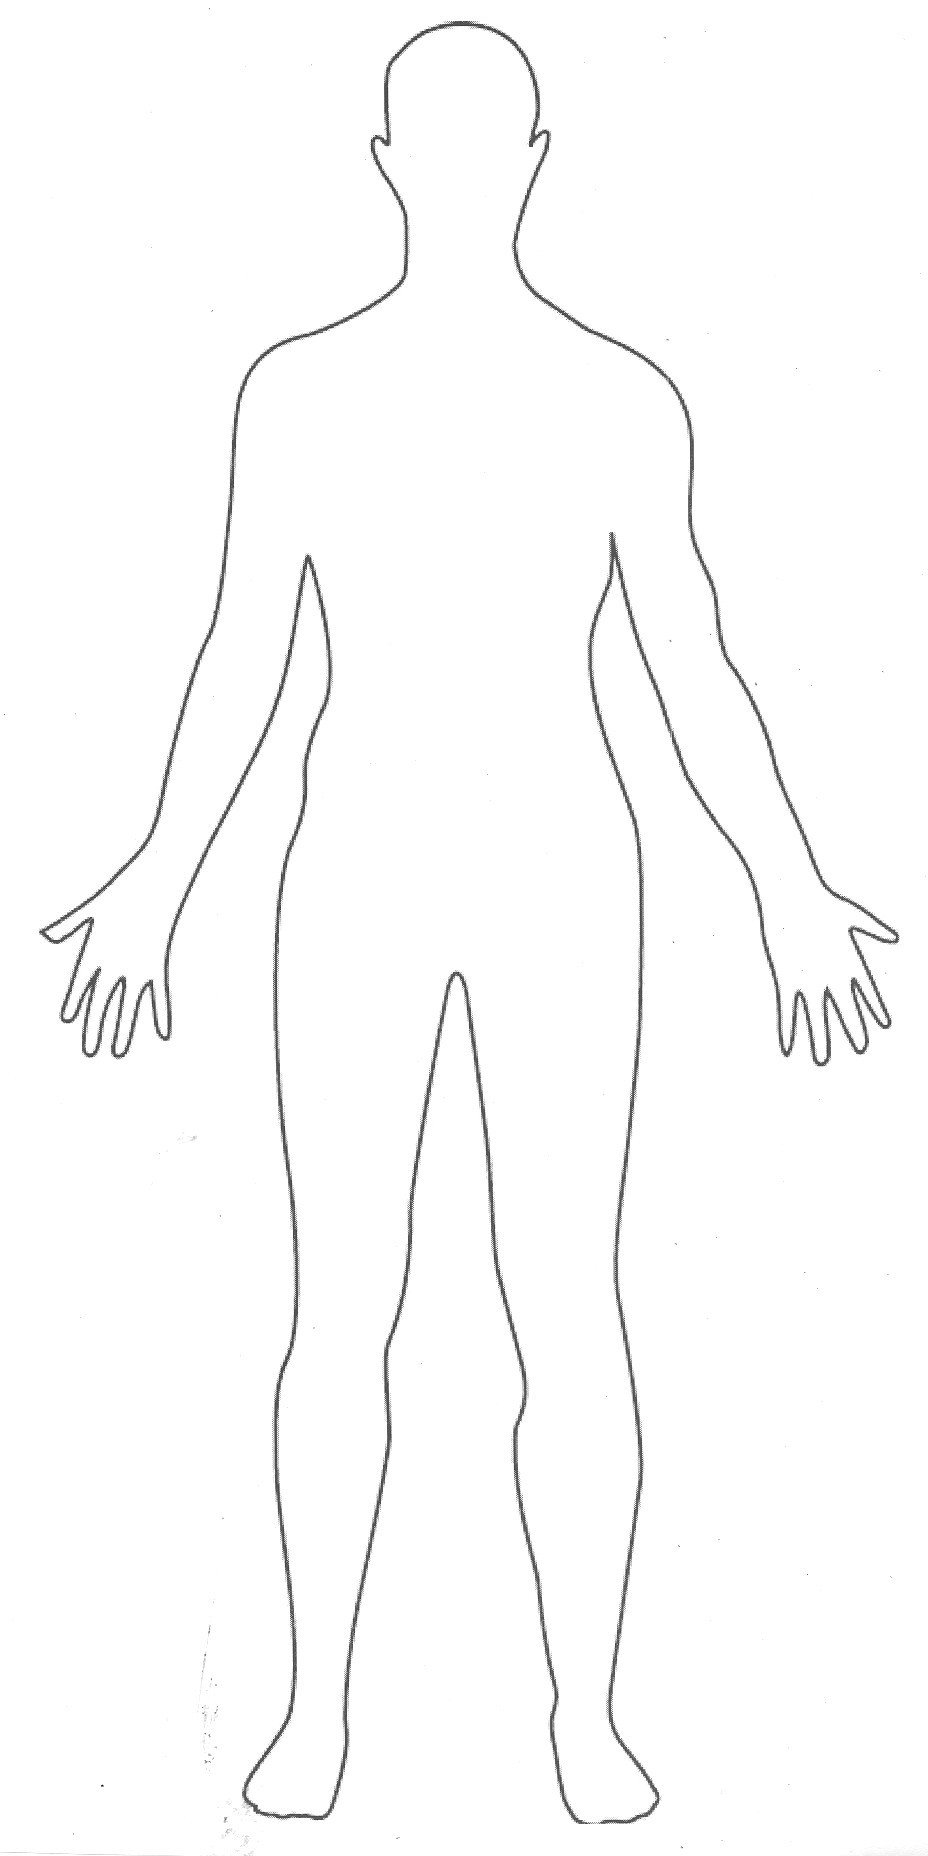 Human Body Outline Drawing Human Body Drawing Outline at Getdrawings